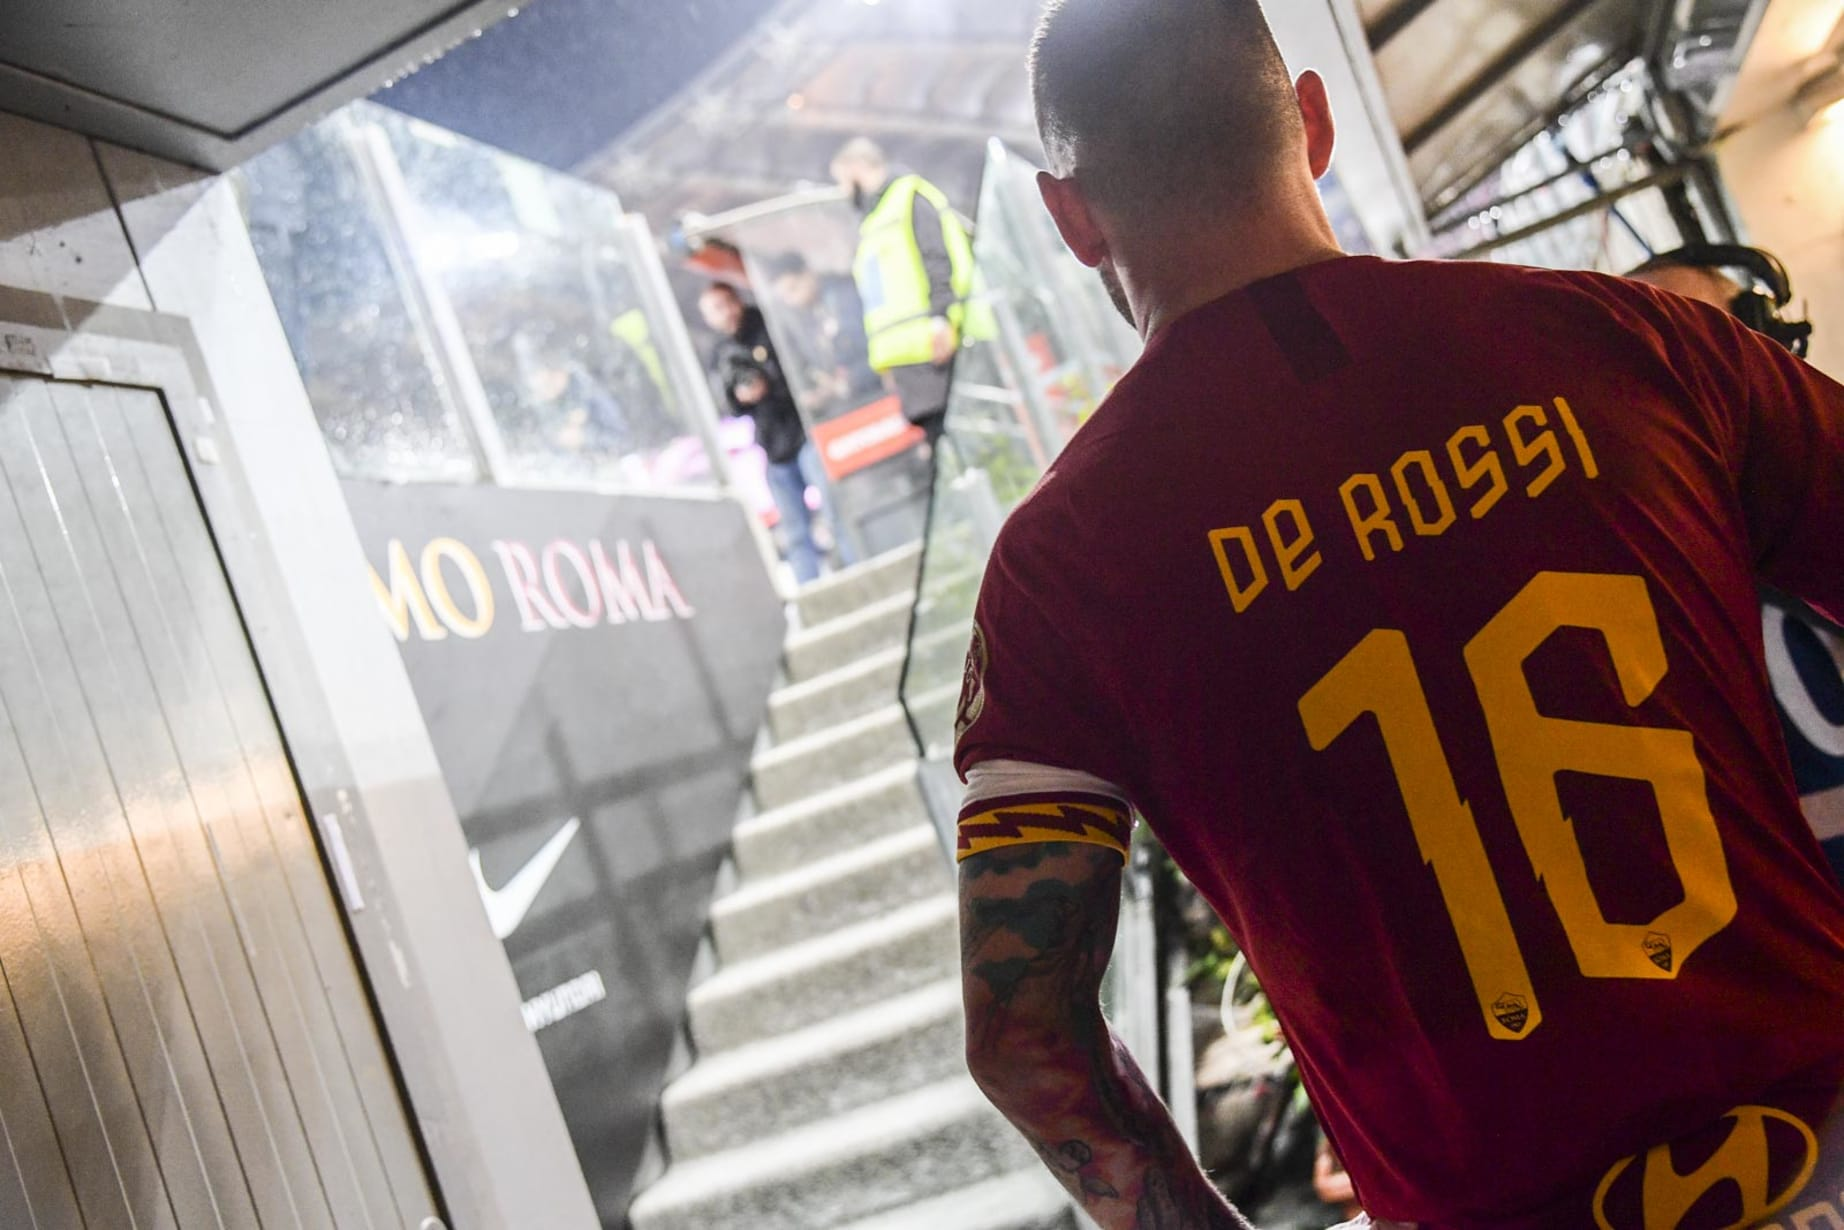 super popular ccf63 74875 Gallery: Best photos from De Rossi's lap of honour around ...